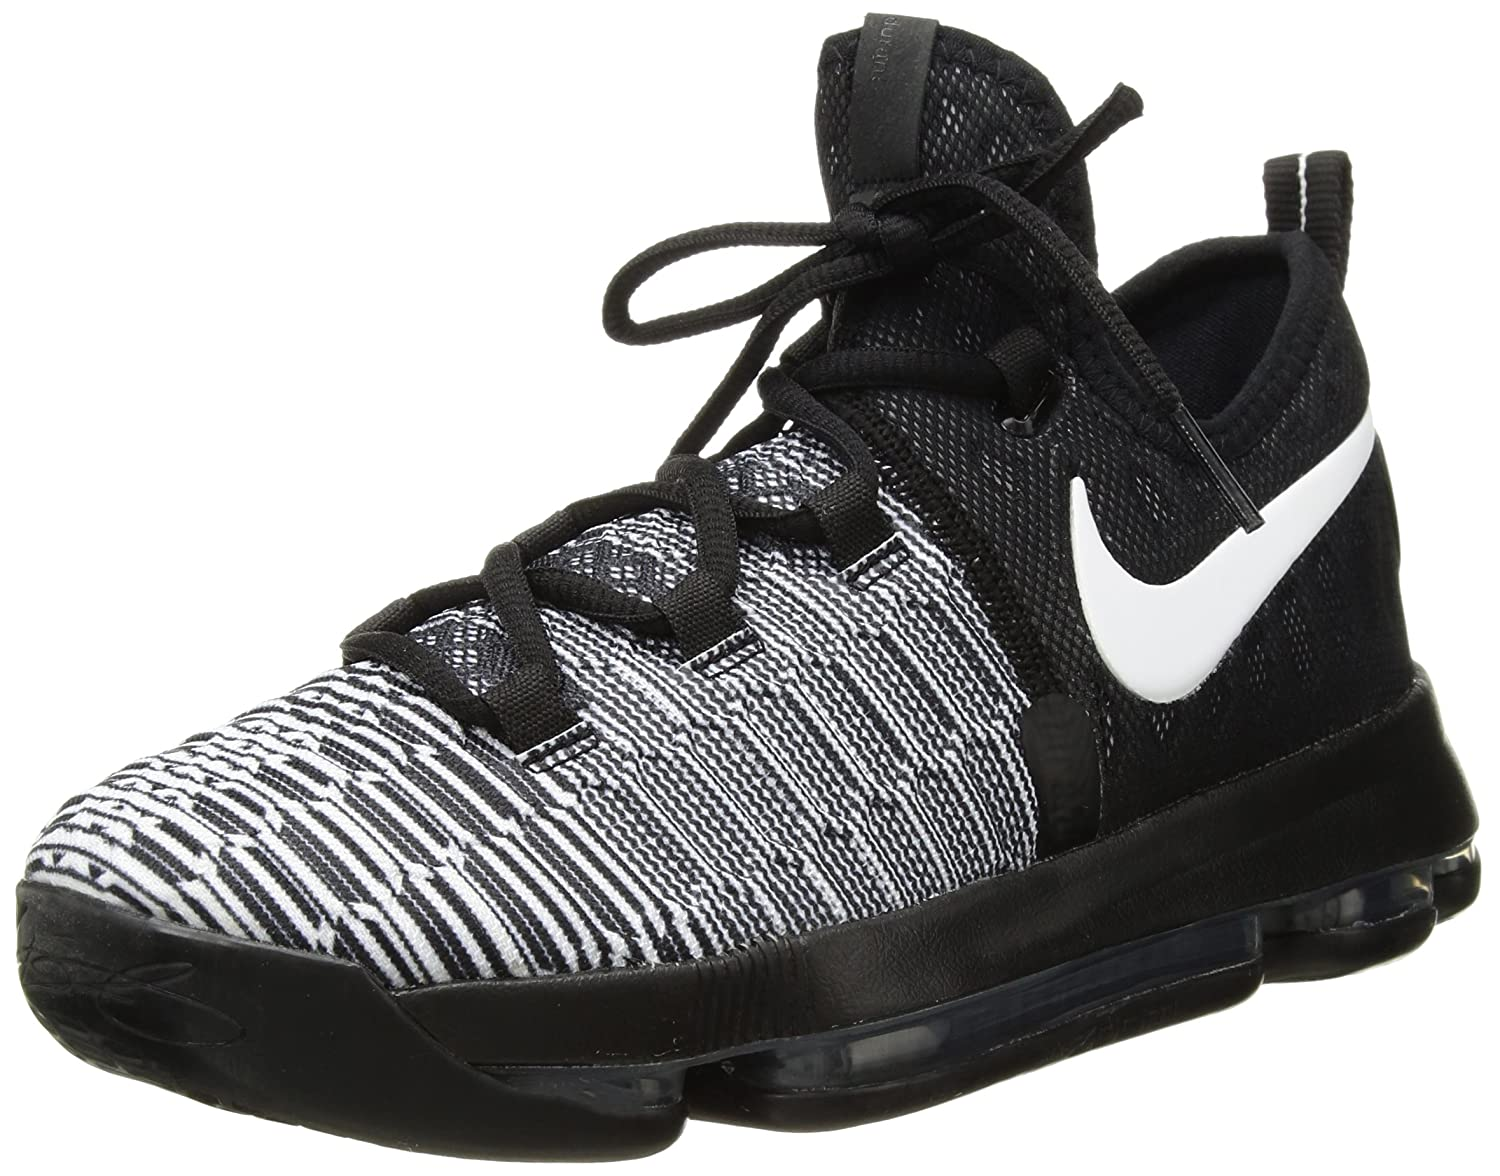 /<855908-001/> YOUTH BASKETBALL SHOES.New with Box NIKE ZOOM KD9 GS